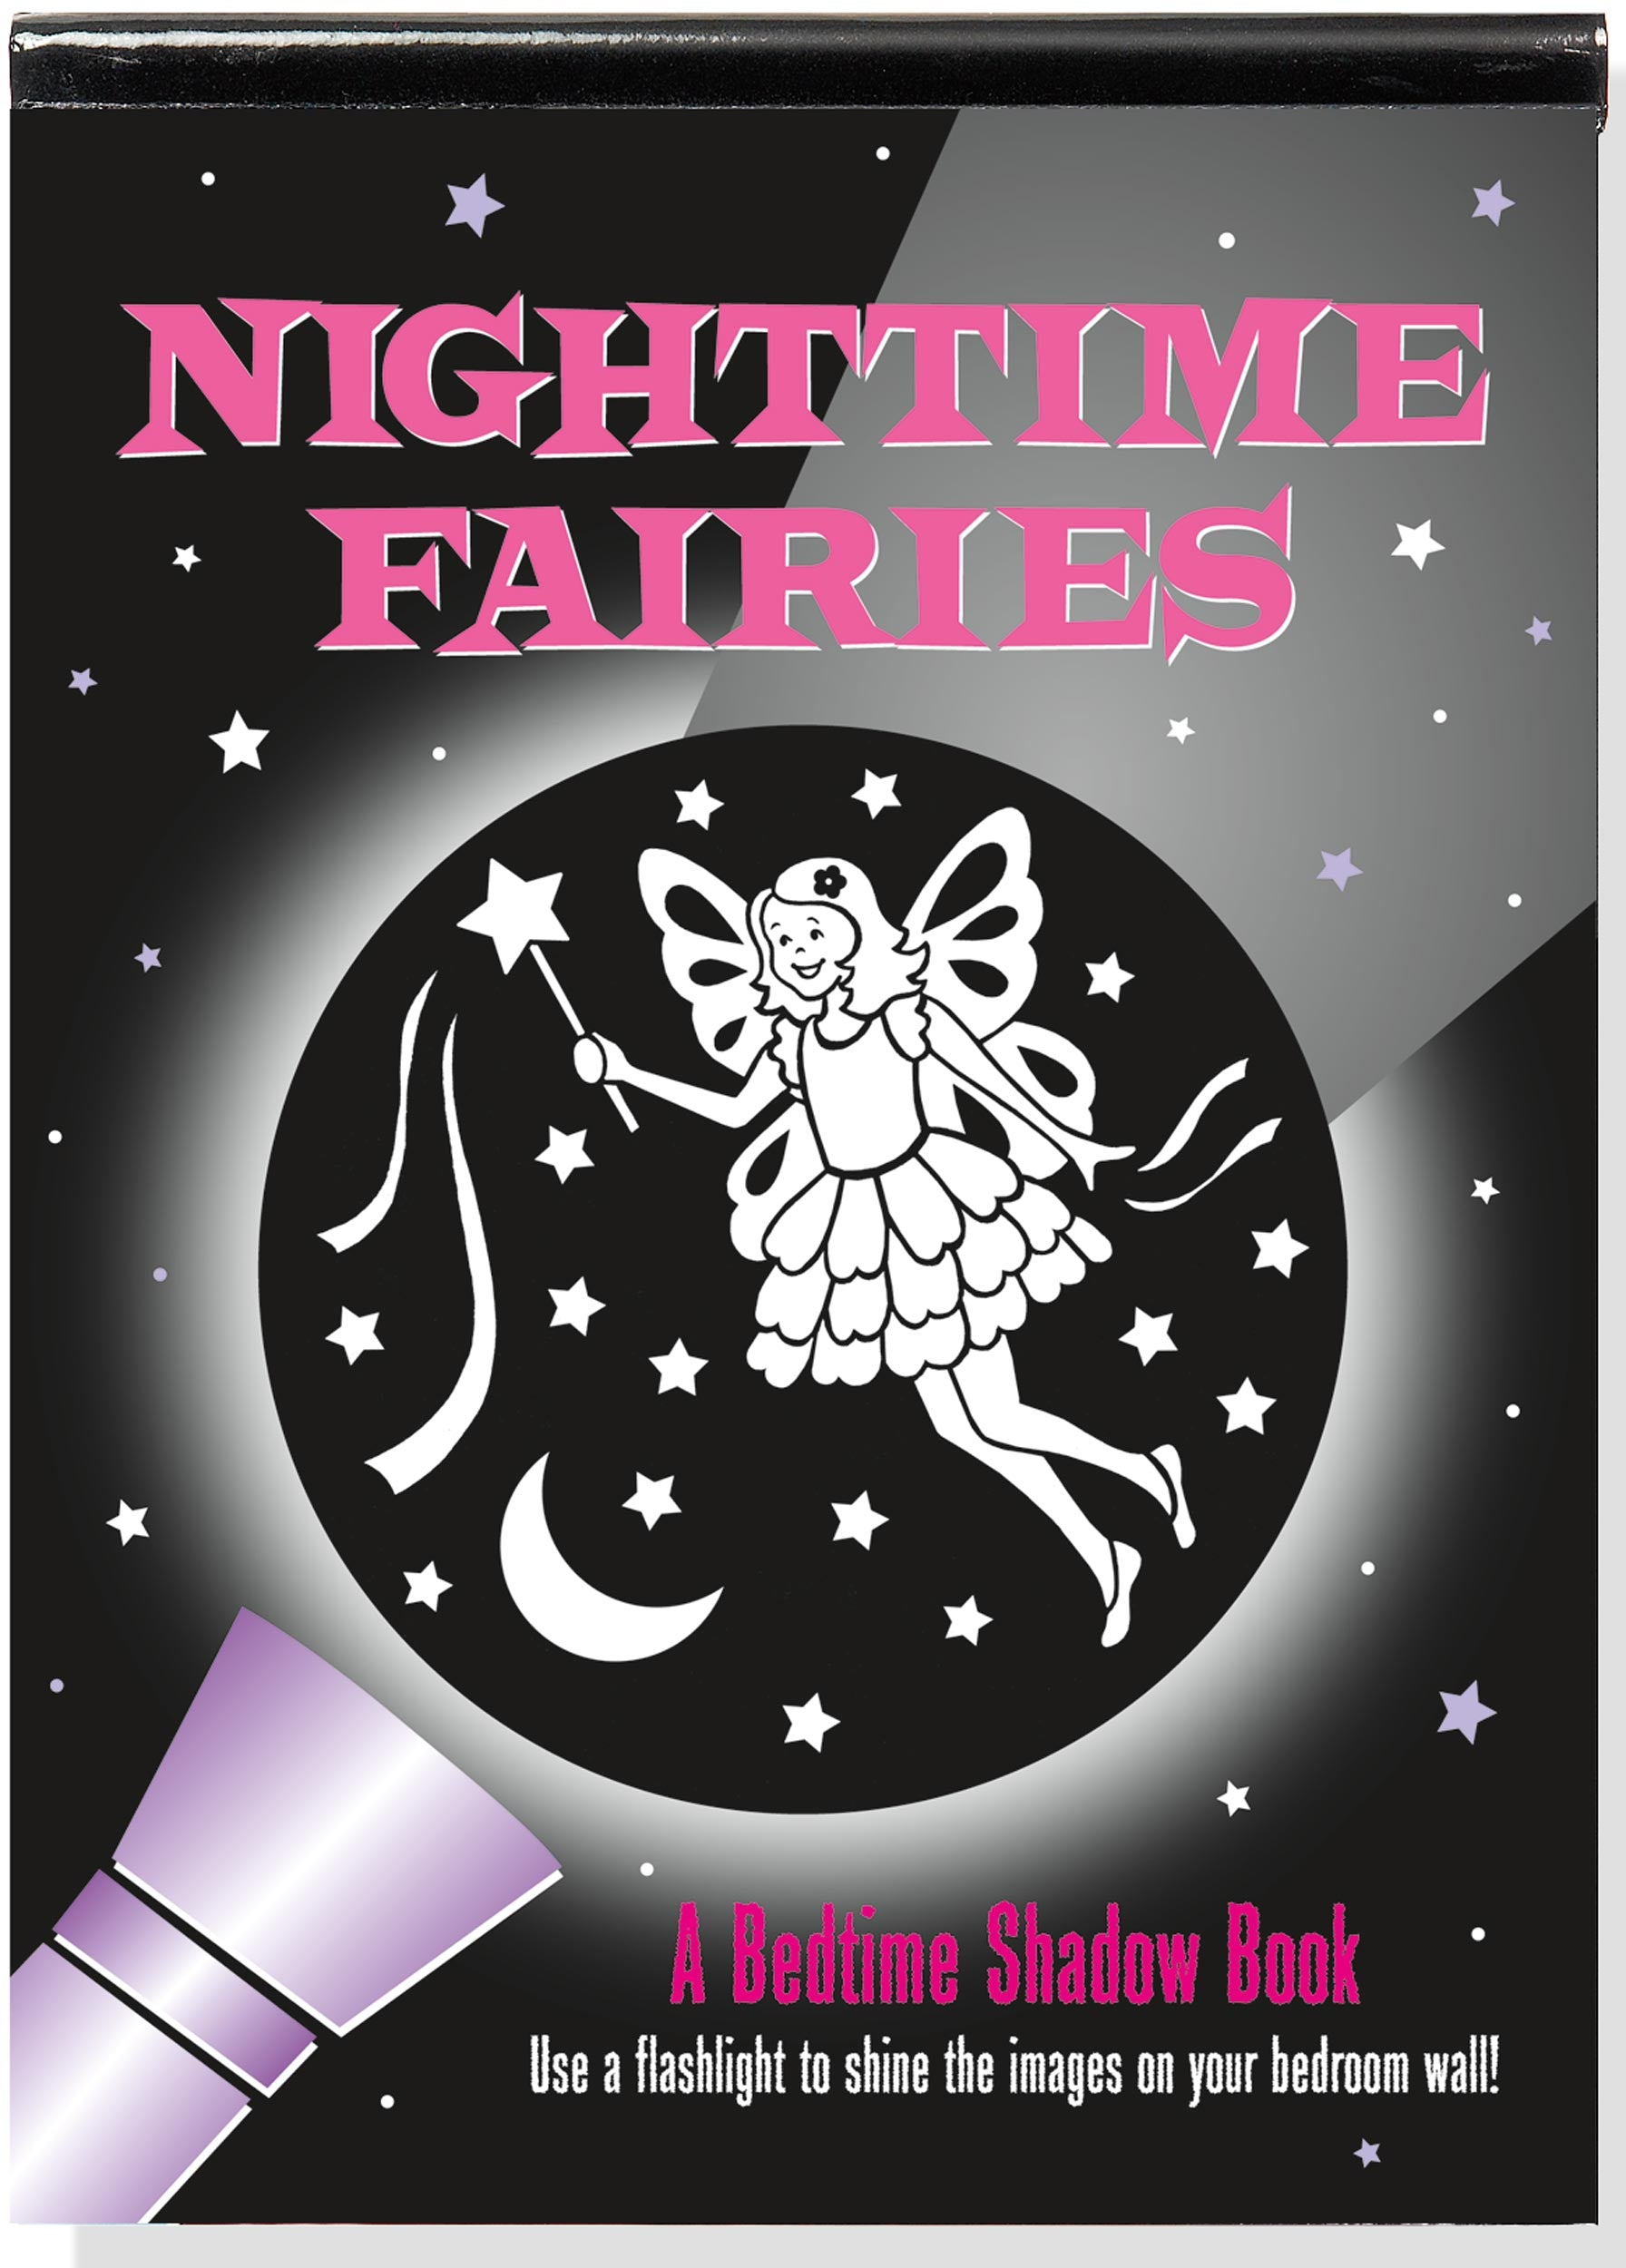 Nighttime Fairies Bedtime Shadow Book - Heart of the Home PA